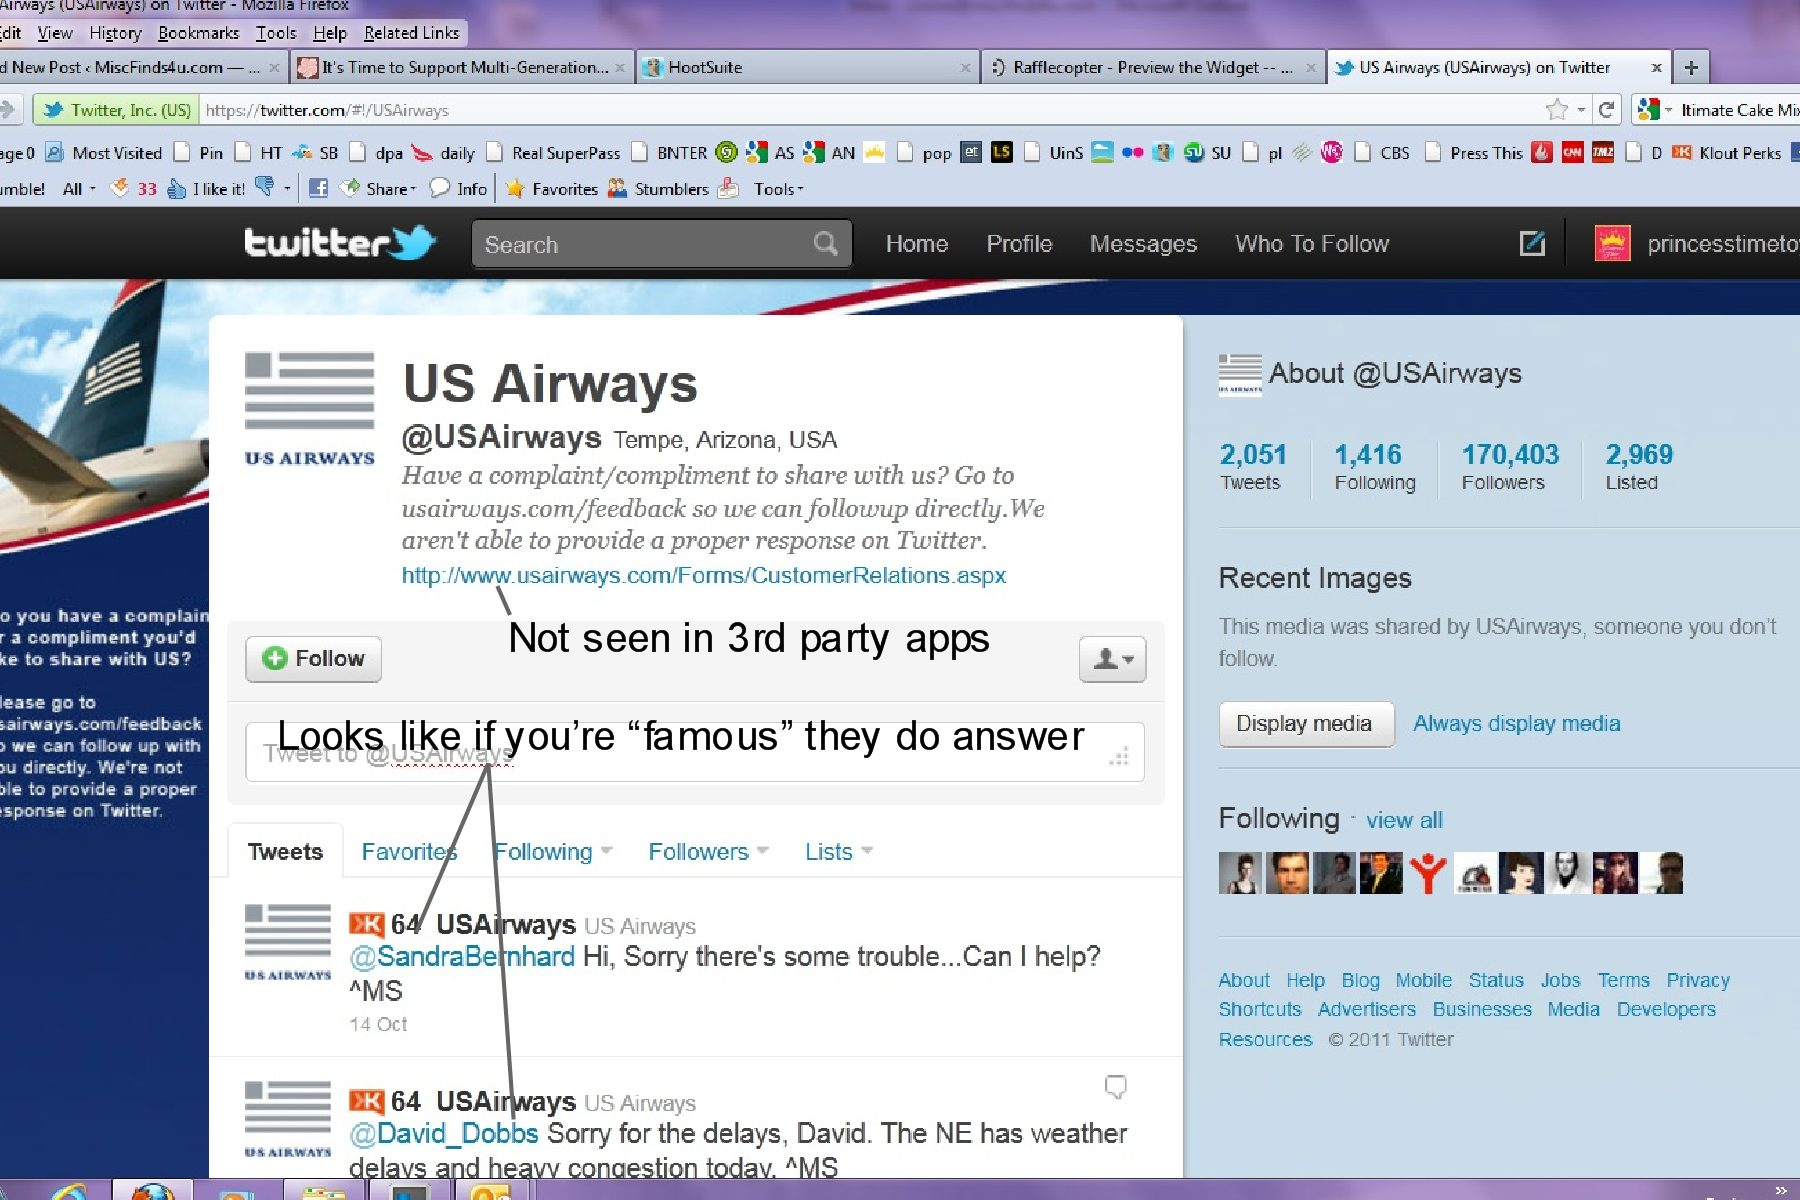 Customer Service Fail by US Airways